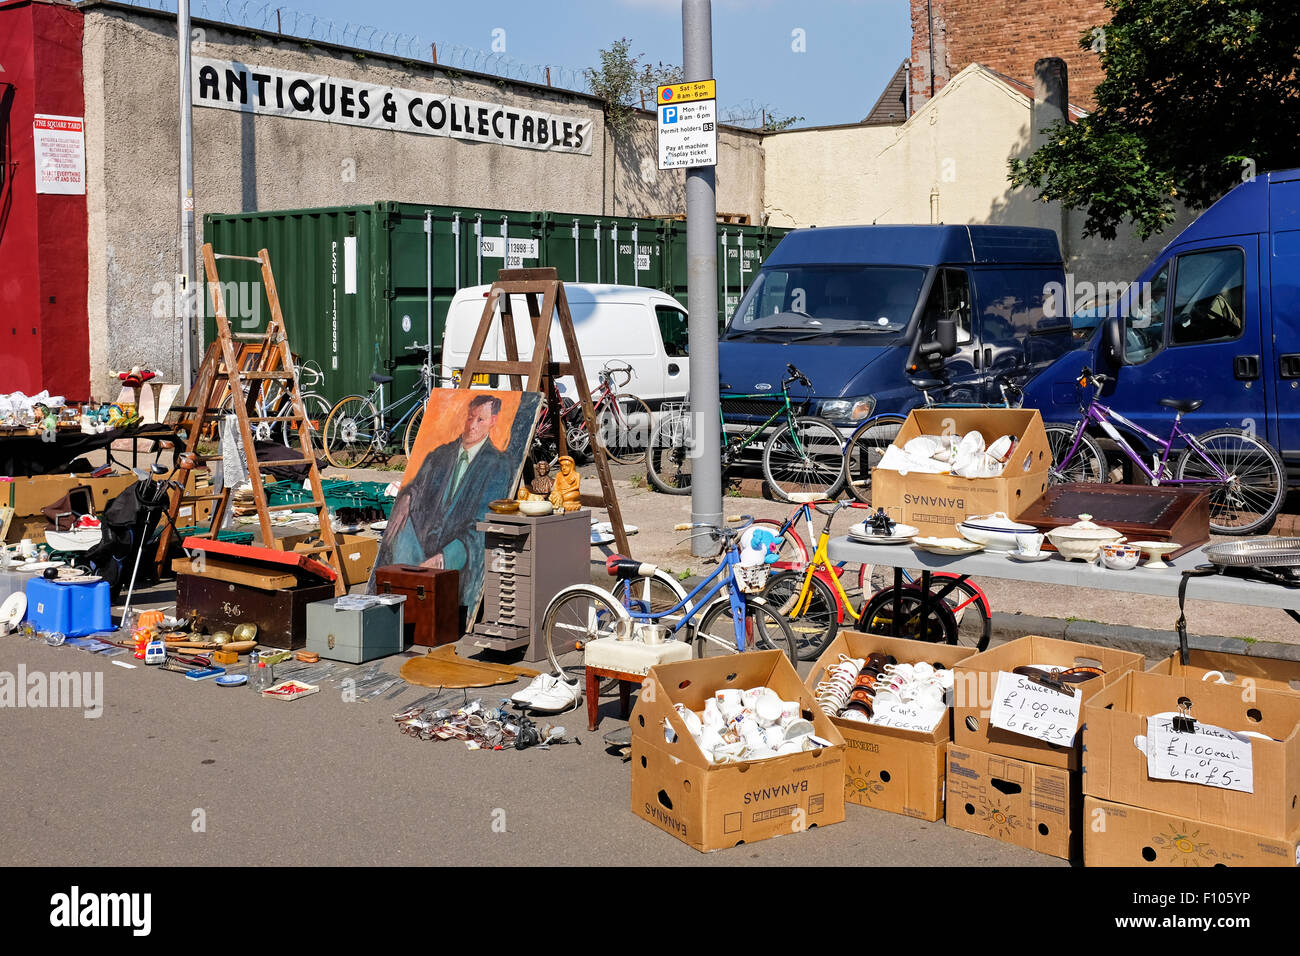 Bric a brac for sale and displayed on the street at The Barras, Glasgow's famous street market, Glasgow, Scotland, - Stock Image